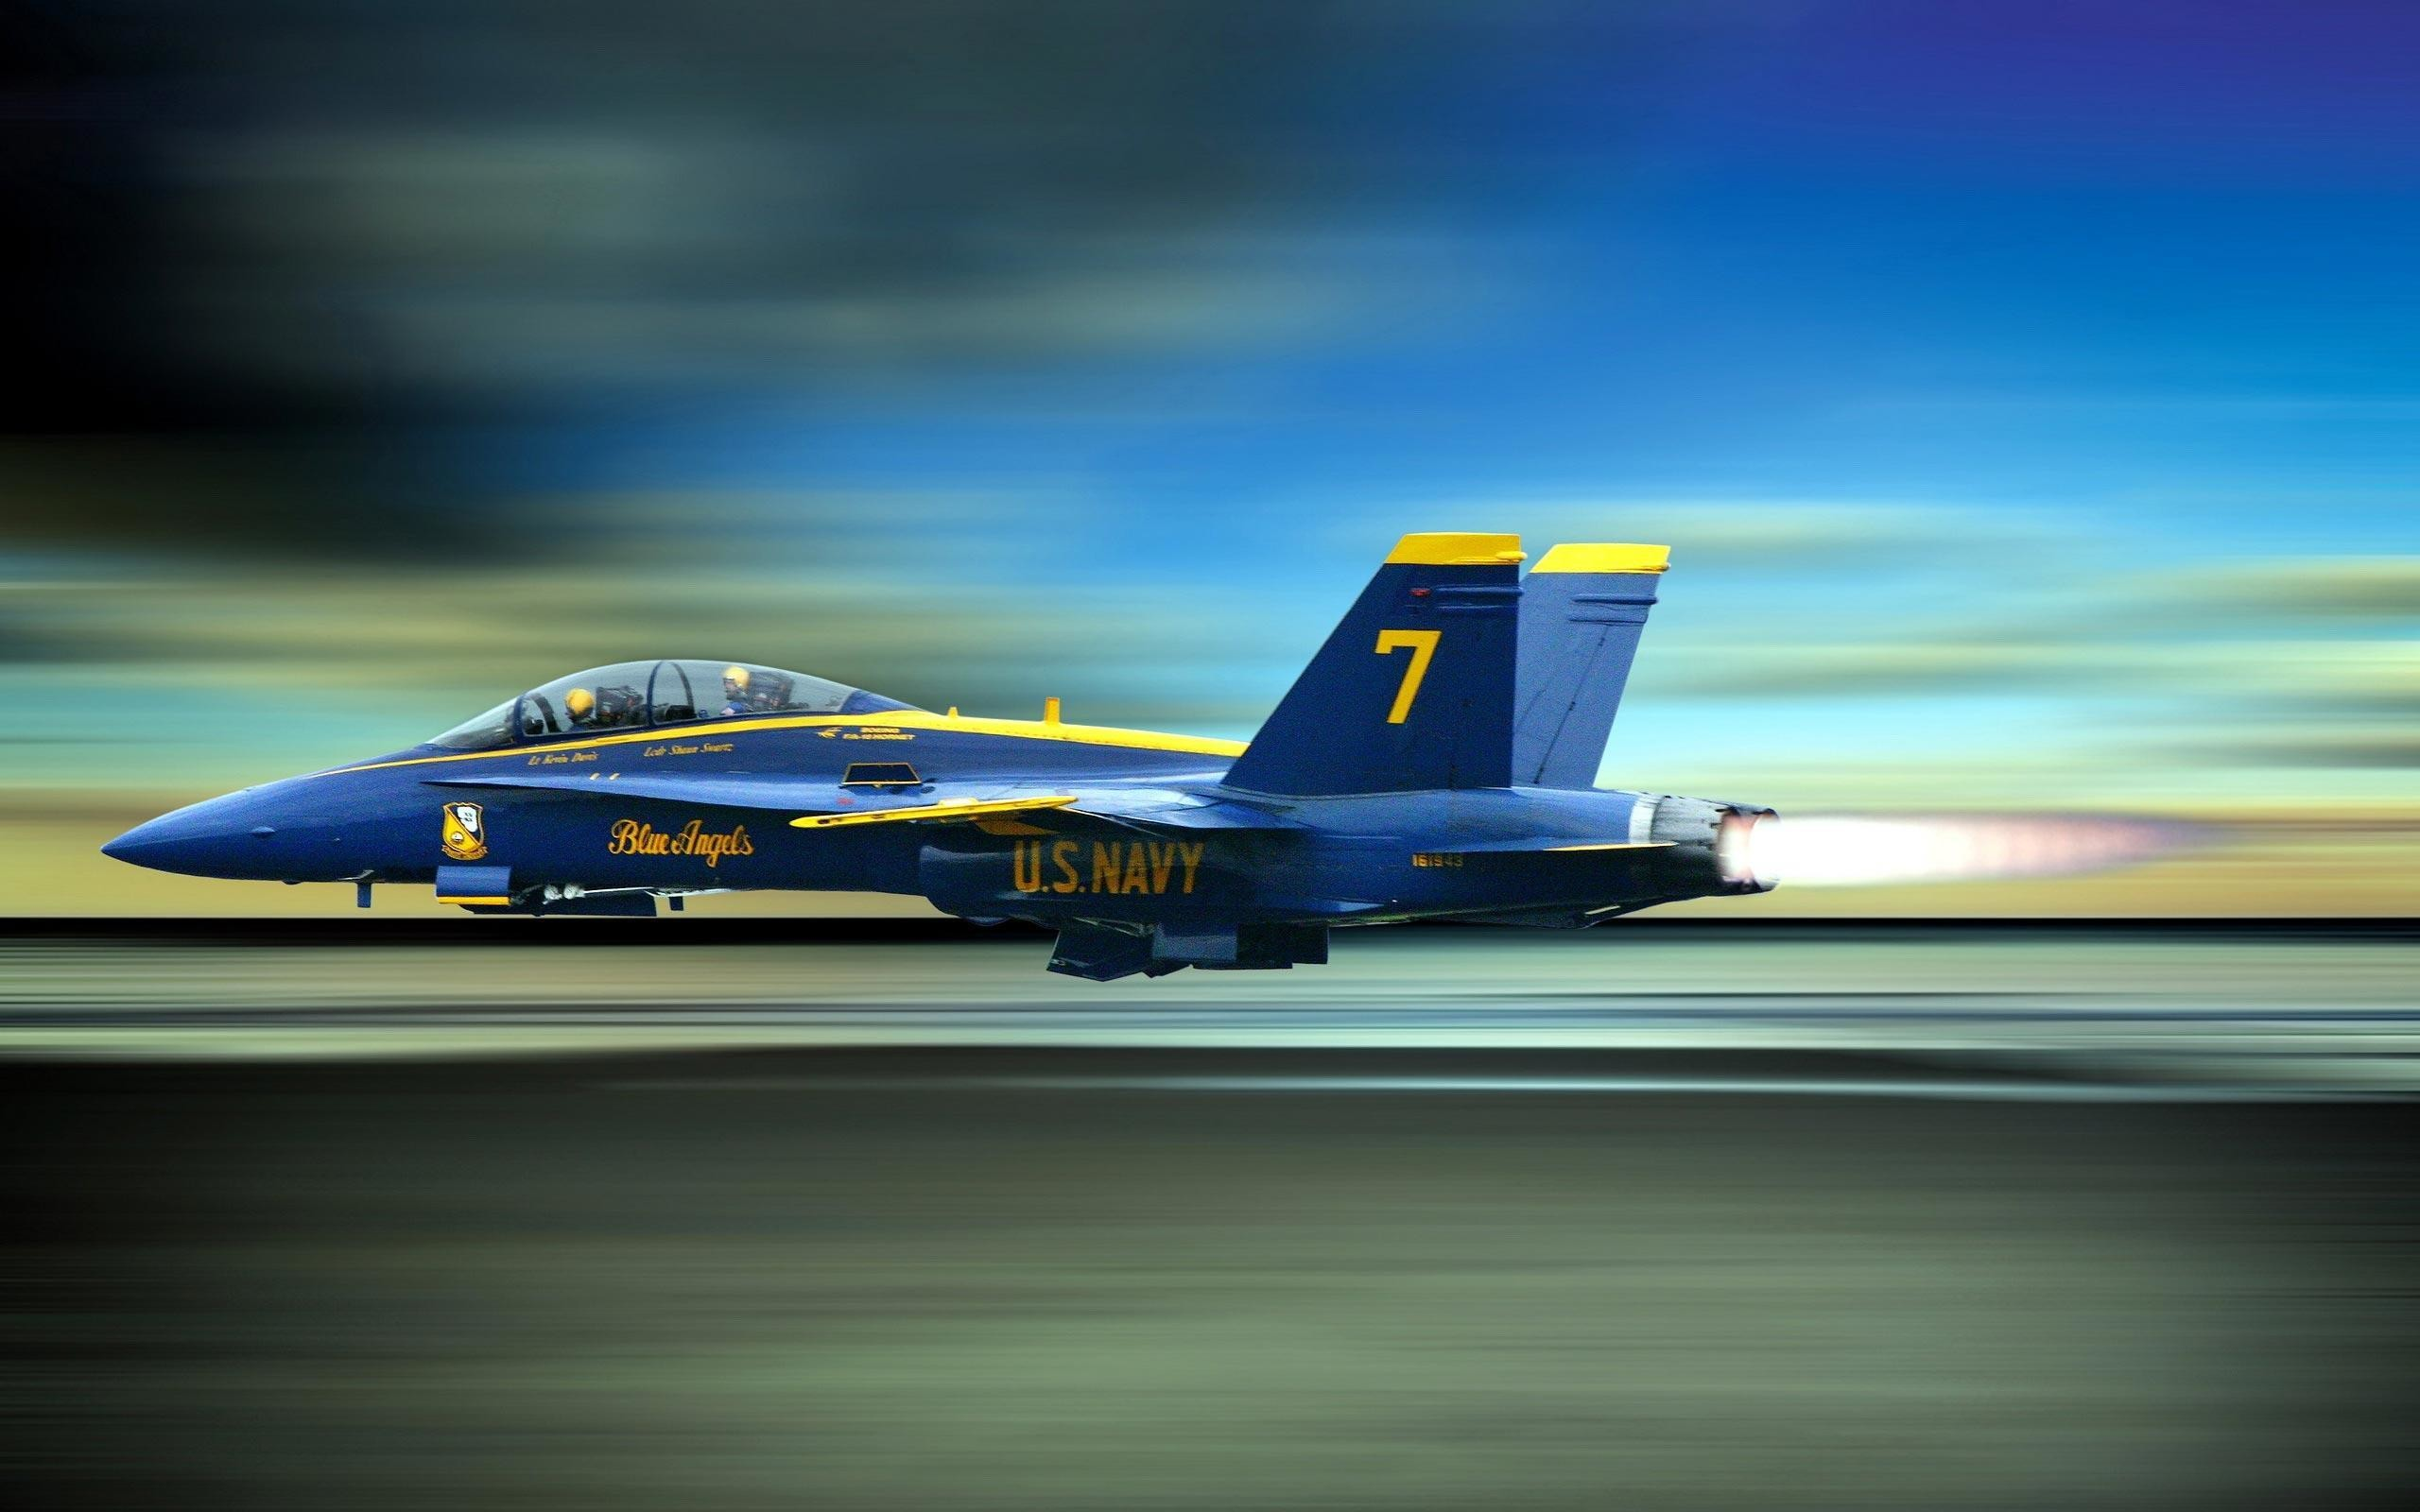 2560x1600 Wallpapers For > Blue Angels Wallpaper